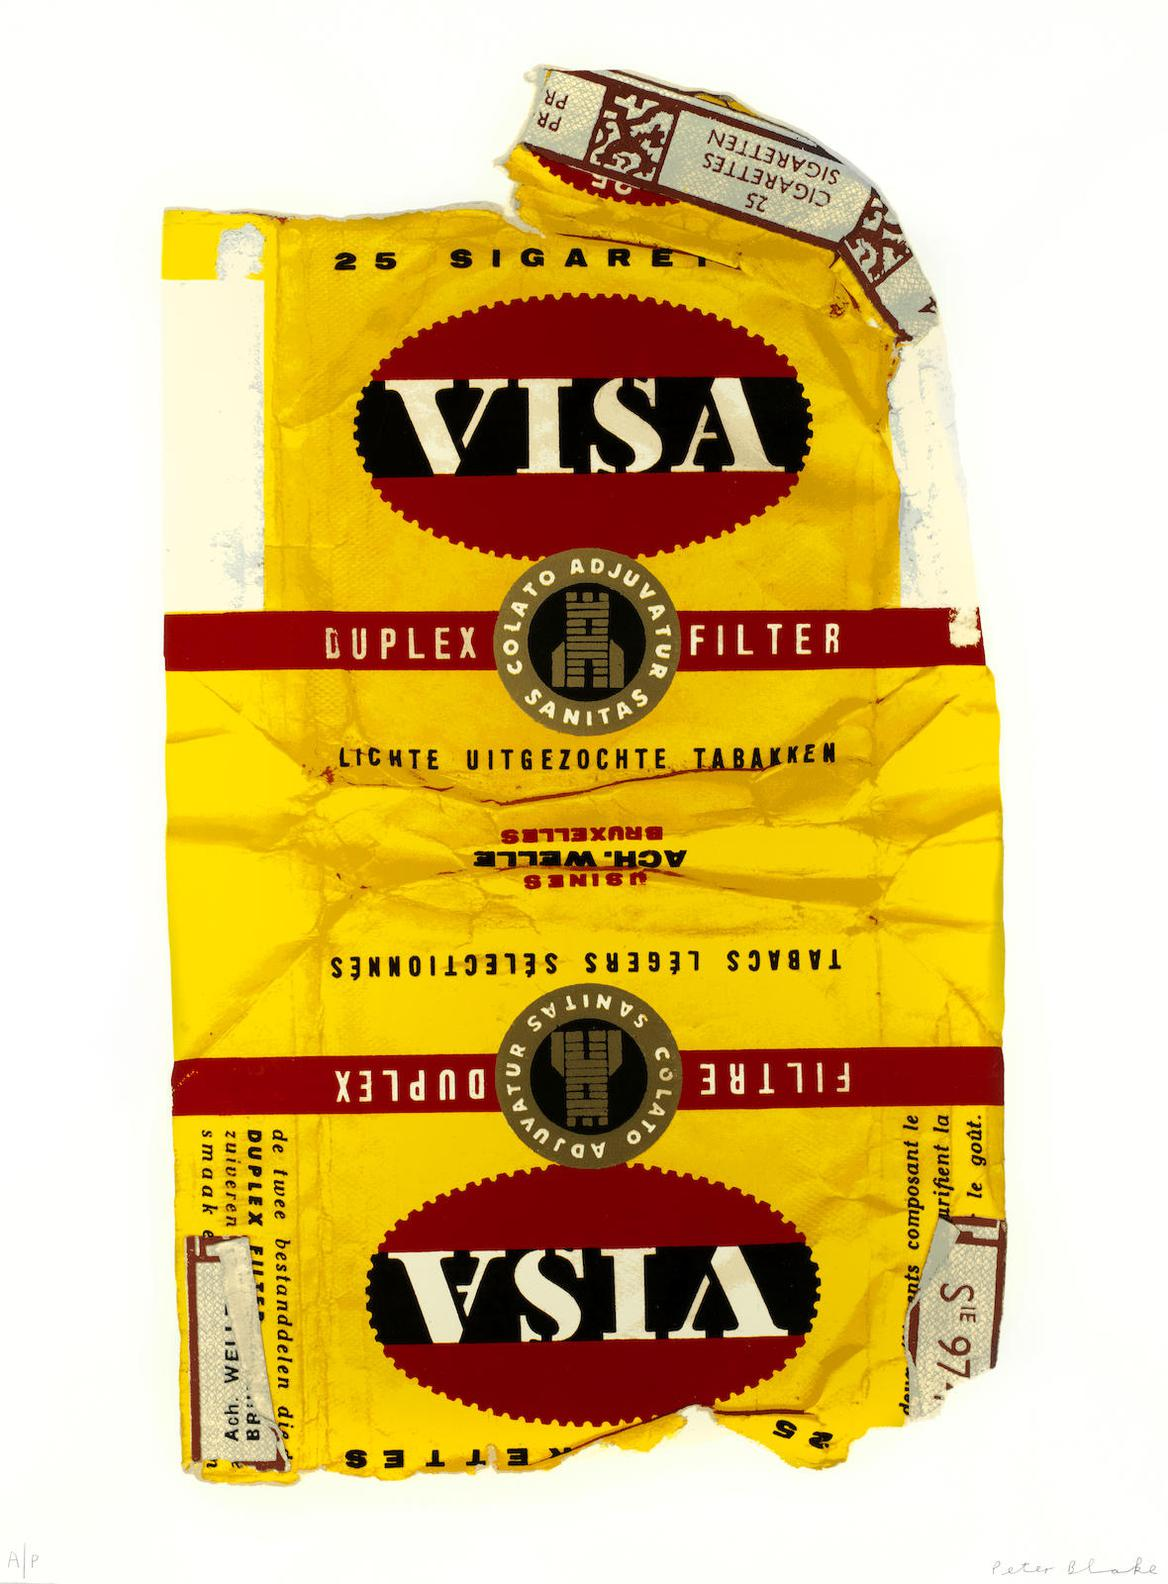 Sir Peter Blake - Fag Packets (Visa, La Ronde, Fifth Avenue And Boule)-2005